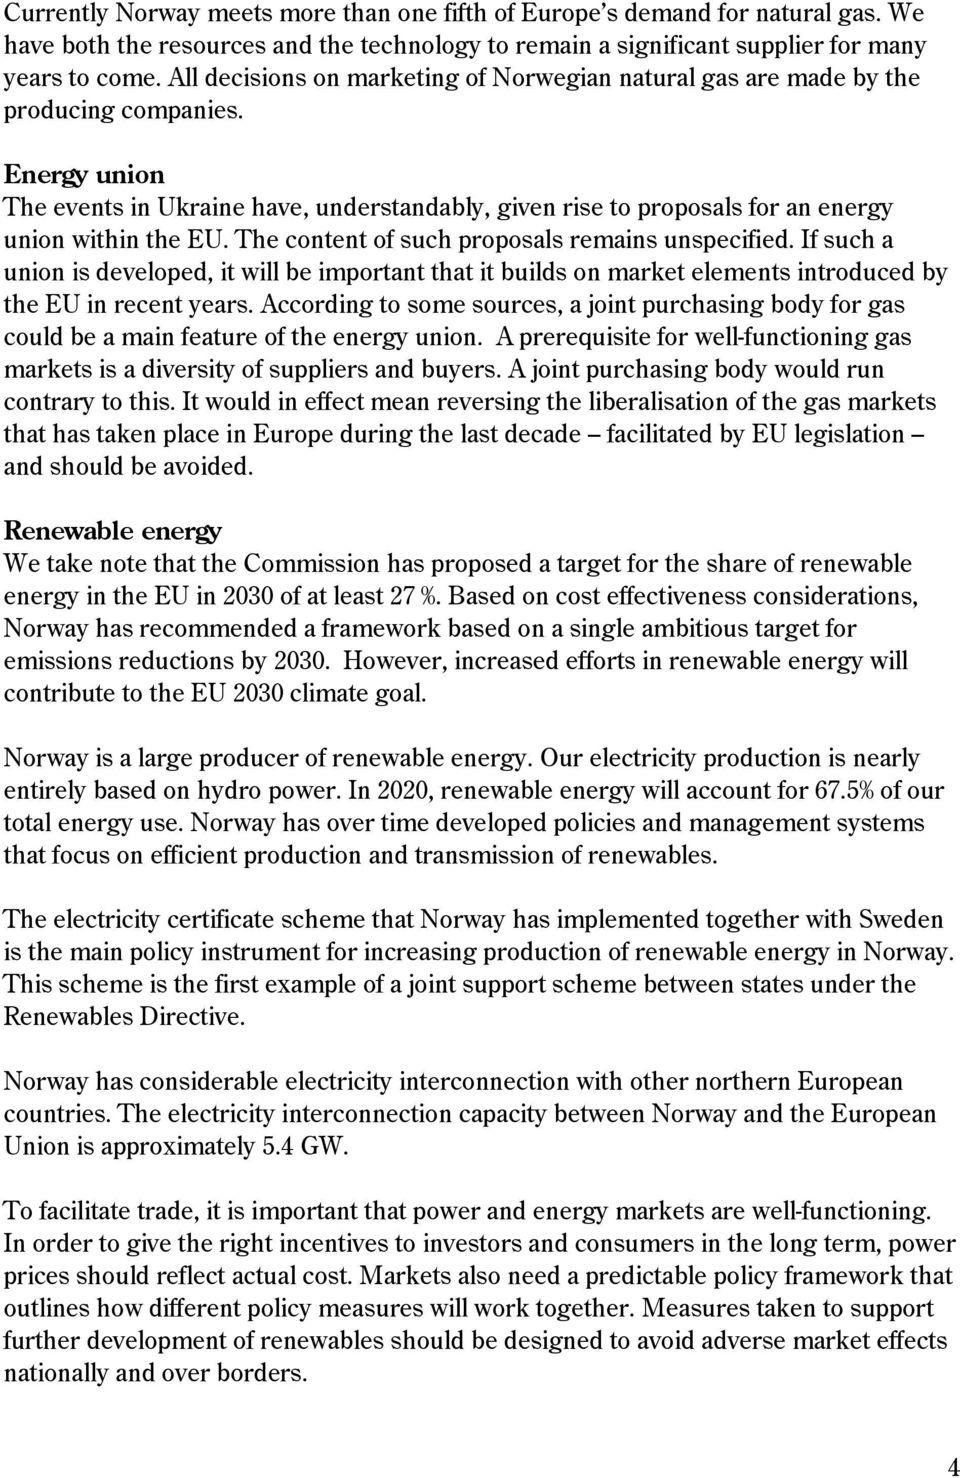 Energy union The events in Ukraine have, understandably, given rise to proposals for an energy union within the EU. The content of such proposals remains unspecified.